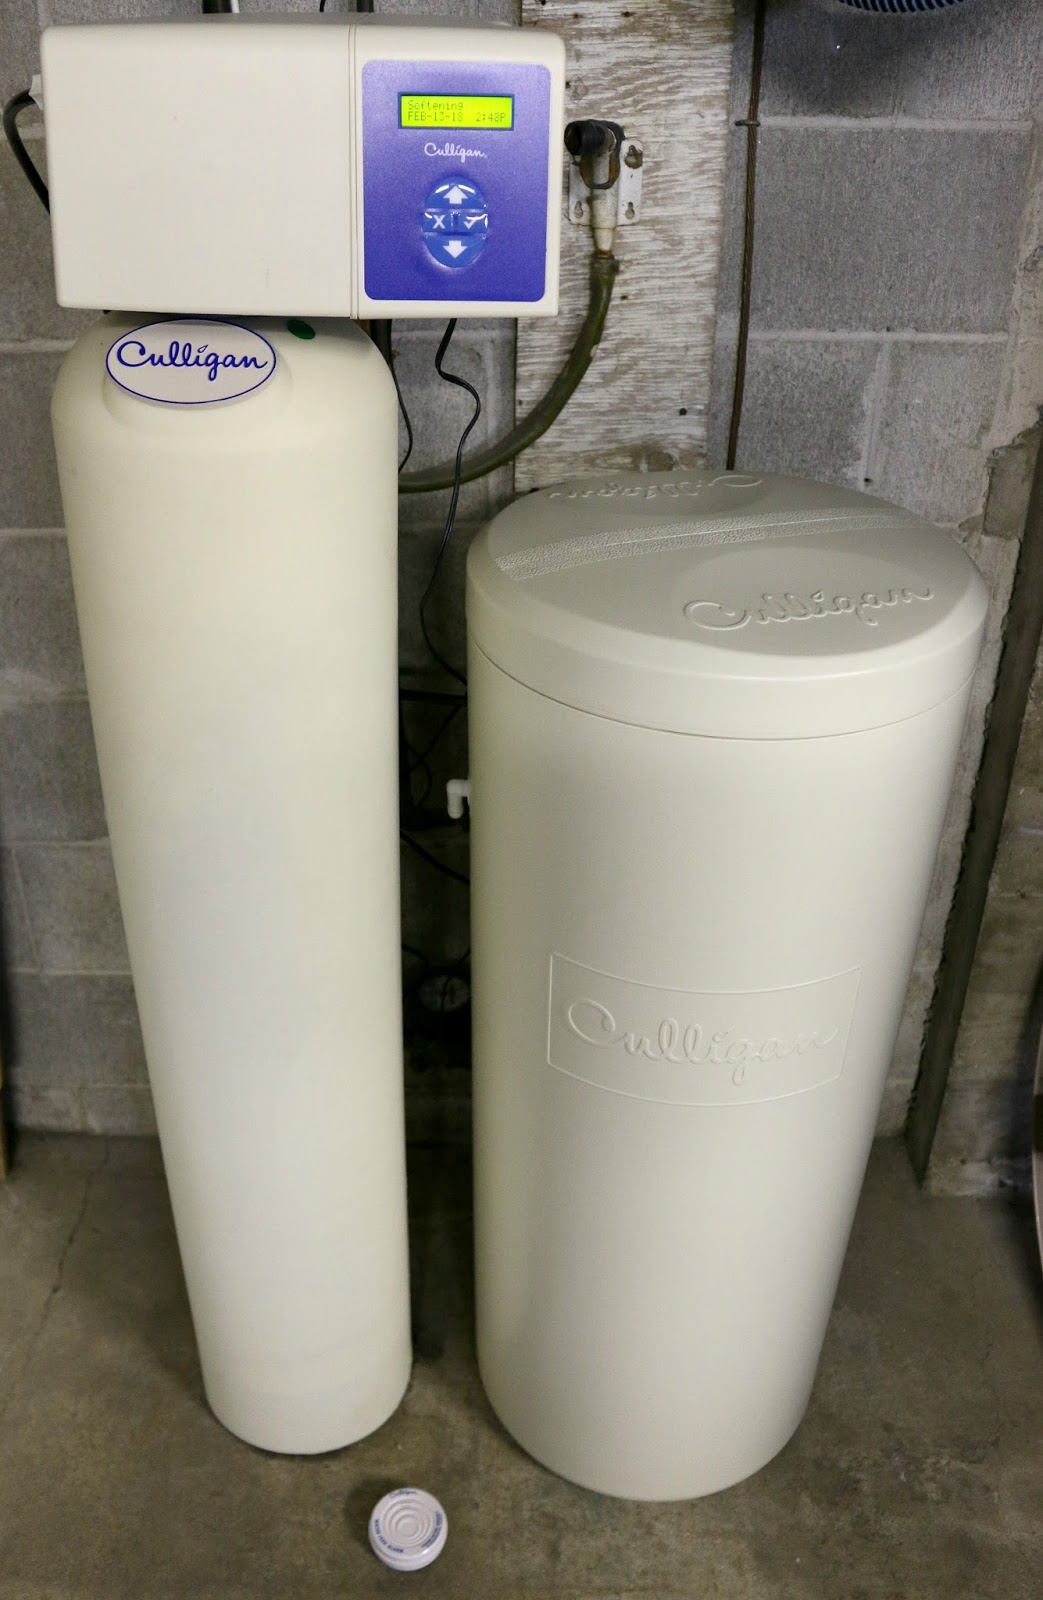 culligan high efficiency water softener